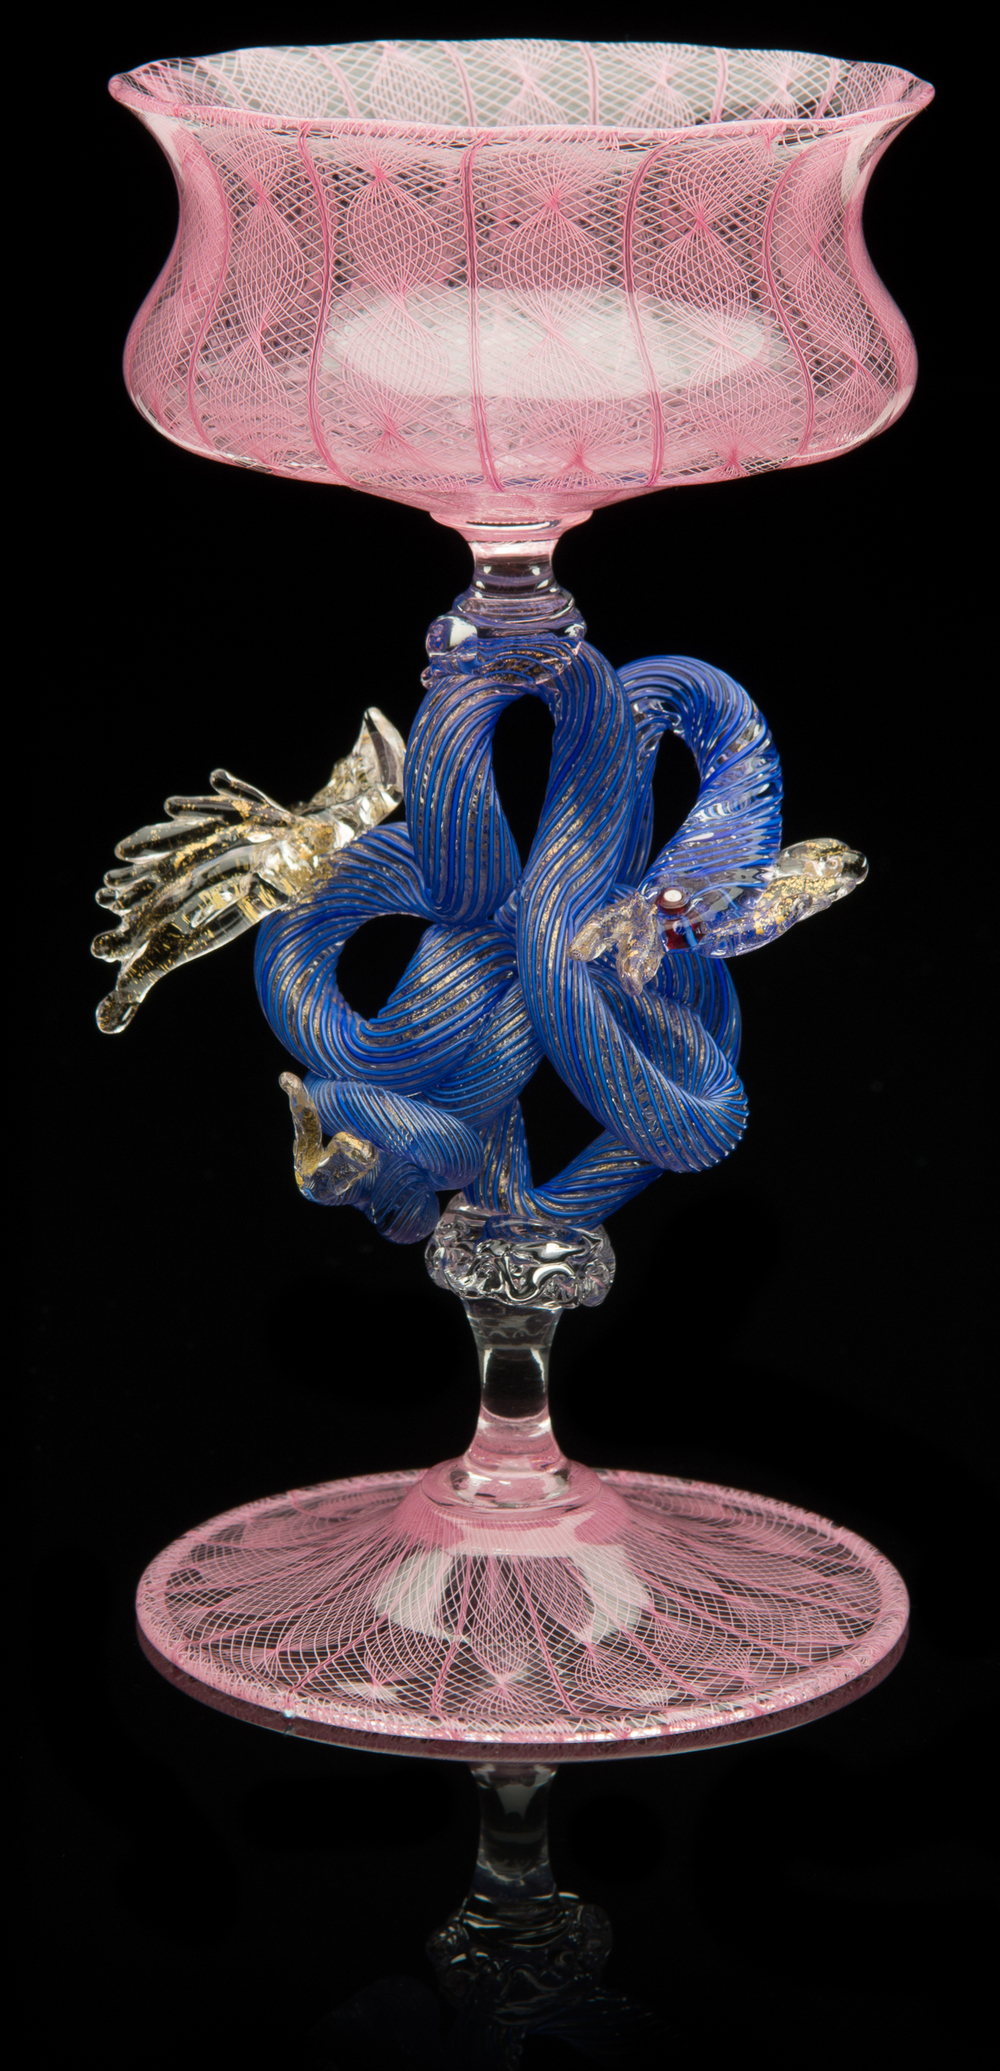 Lino Tagliapietra,  Serpent-stem   Goblet  (1991-1994, glass, 5 5/16 x 3 5/8 x 3 5/8 inches), LT.51